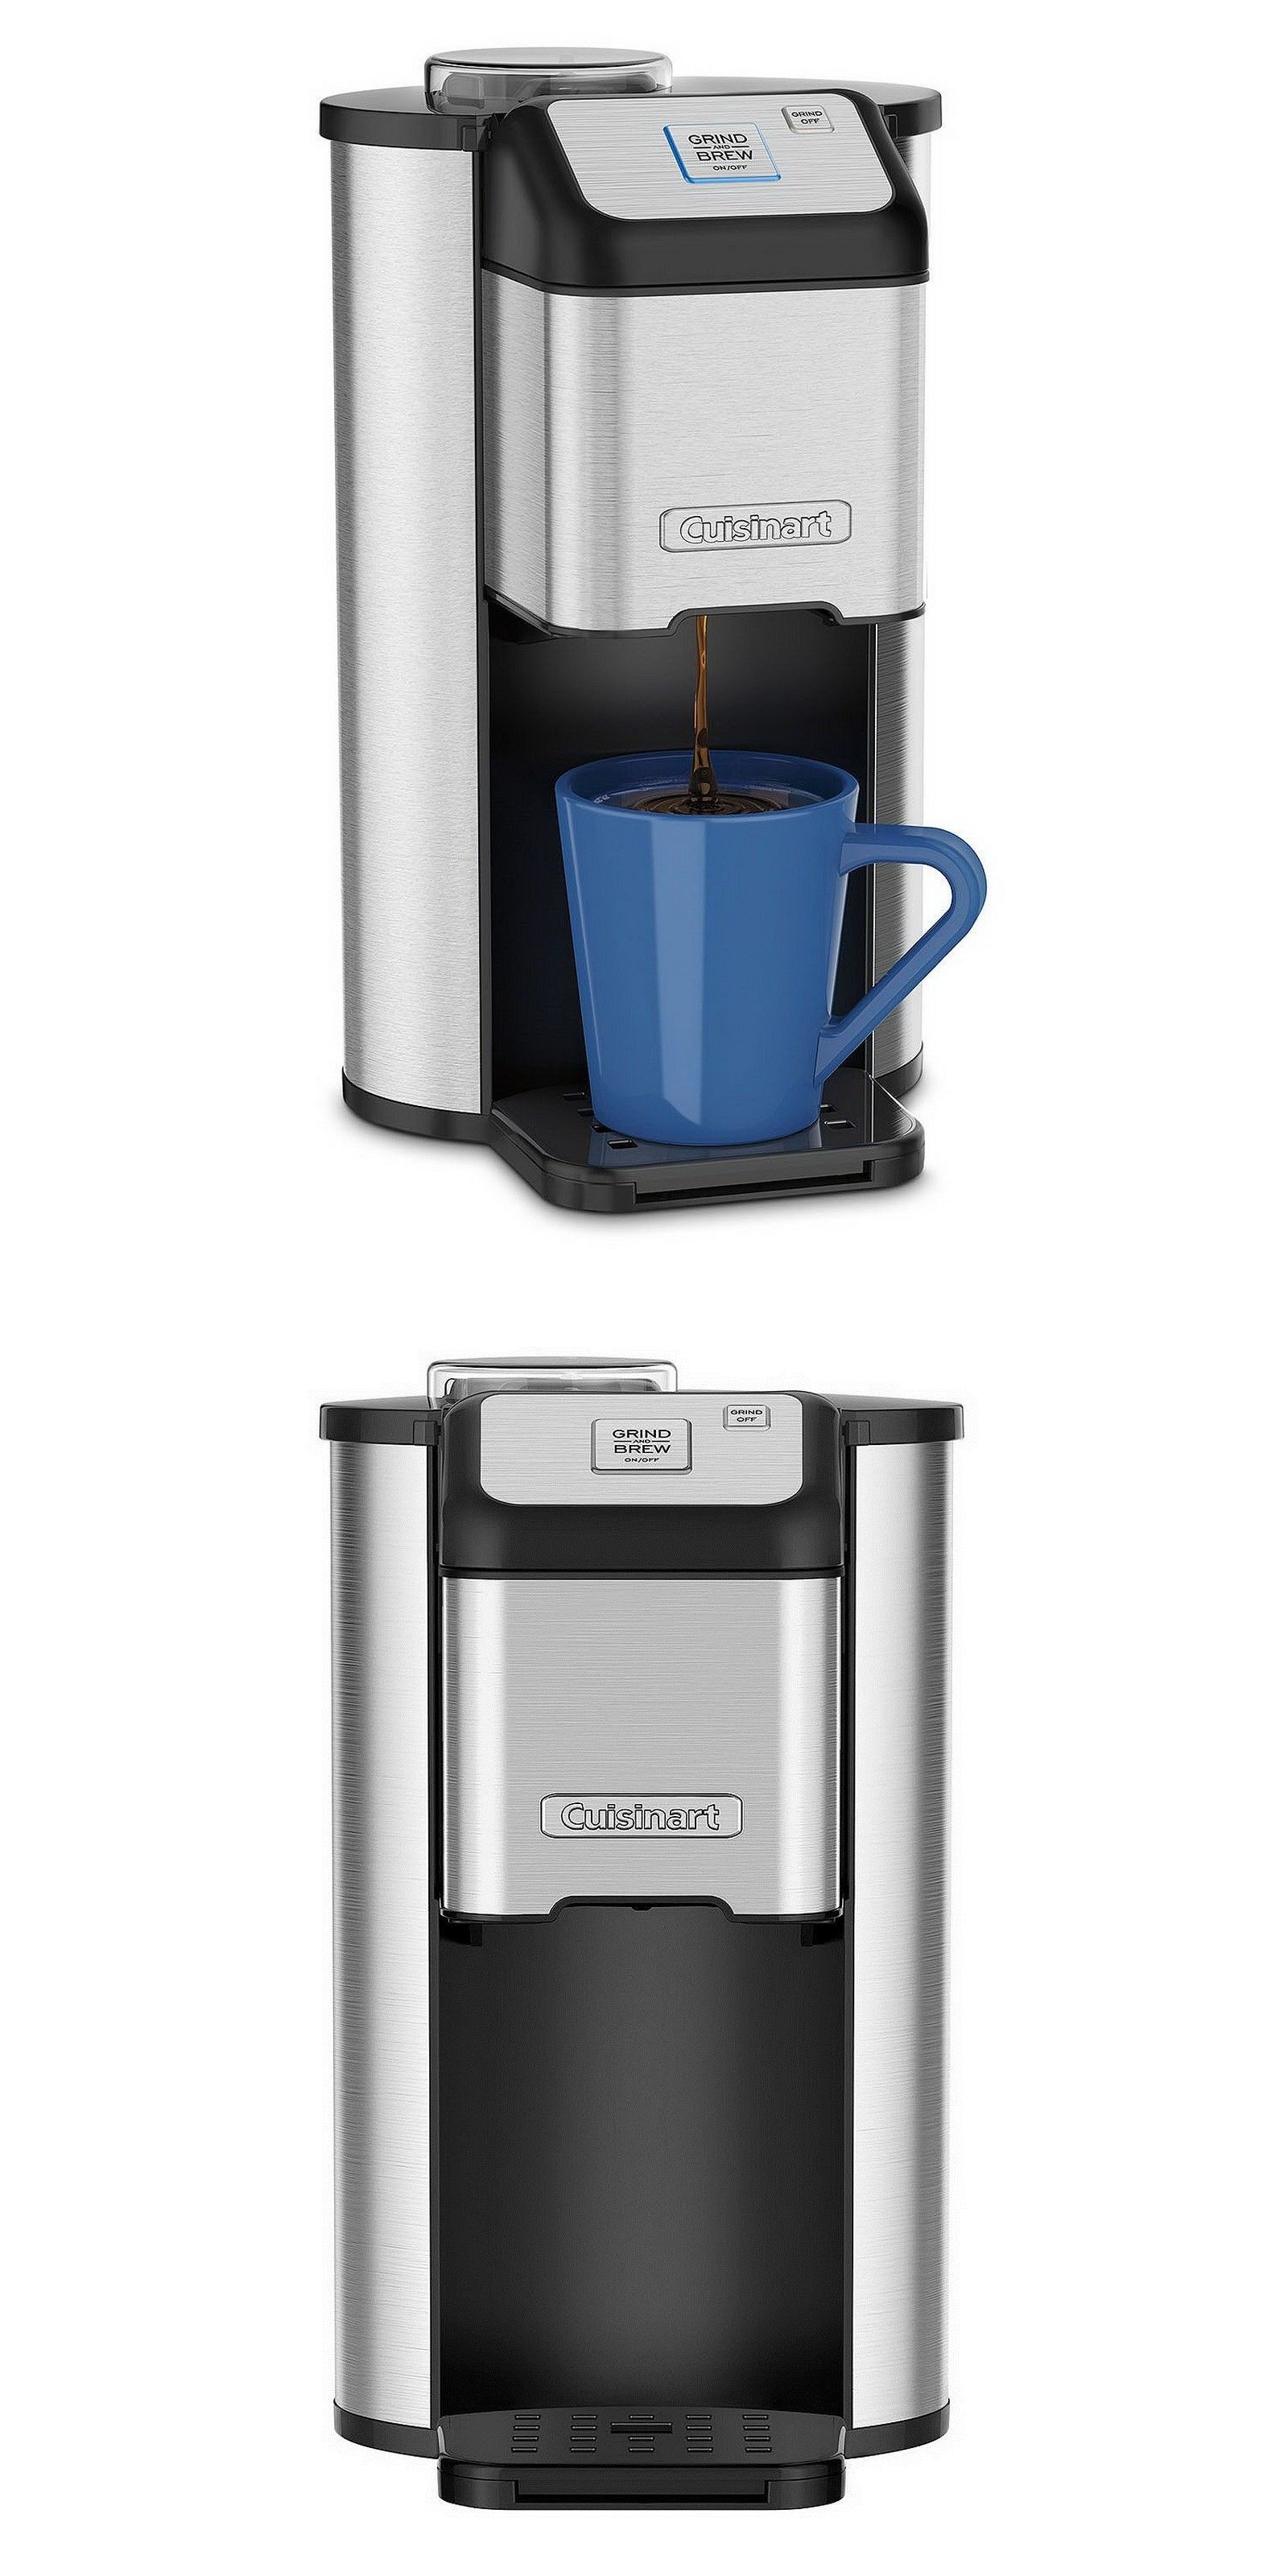 appliances Single Serve Coffee Maker Cuisinart Grind And